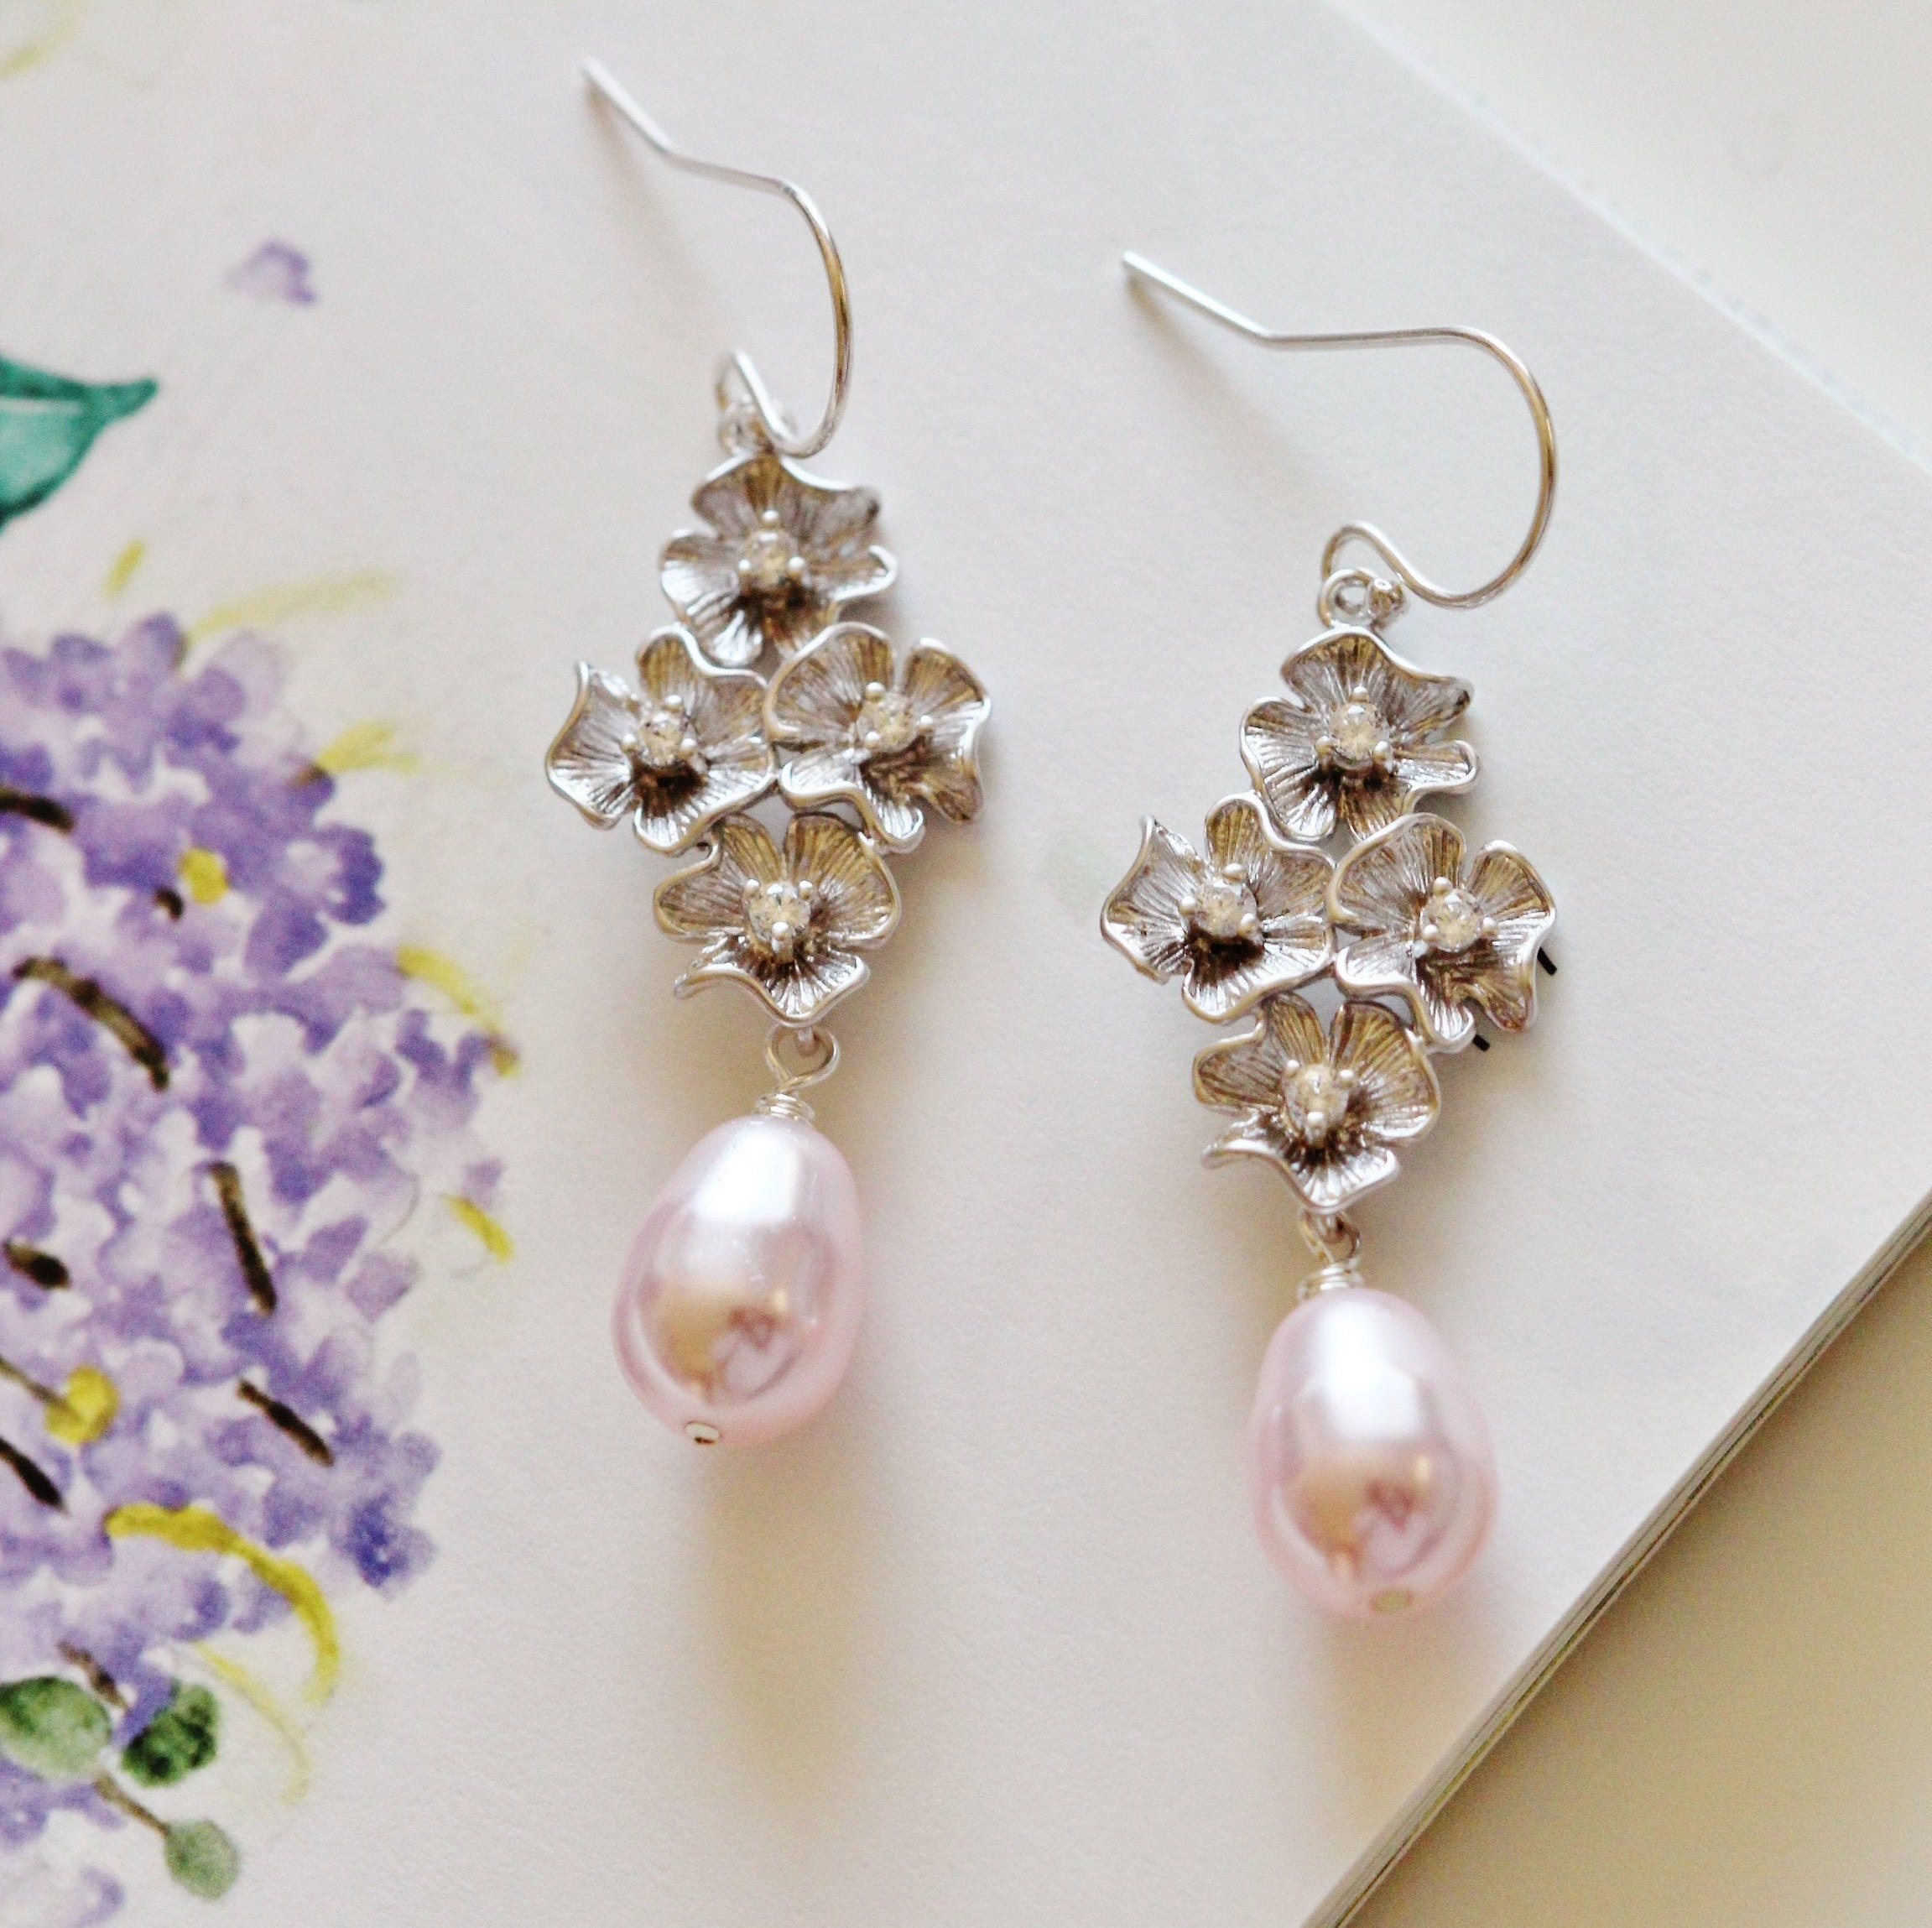 Pearl Flower Earrings Mother of Pearl and Gold Flower Earrings Bridesmaid Gifts Dainty Gold Earring Floral Gold Earrings Spring Jewelry